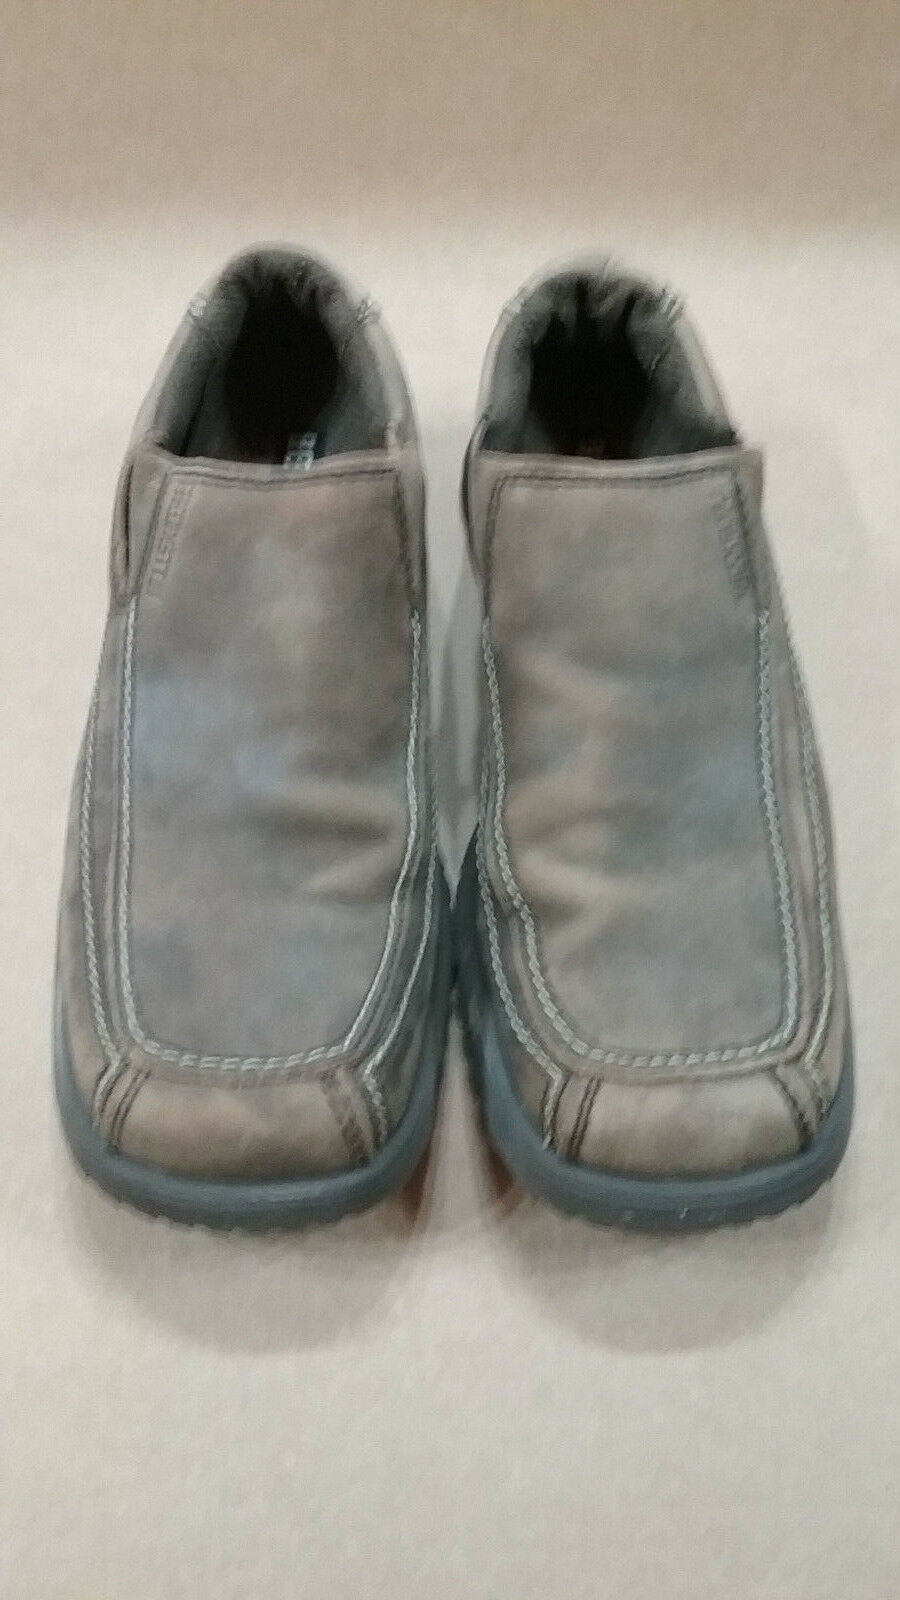 Mens Size 11 BED STU The Next Step Brown Soft Suede Leather Casual Slip-on shoes